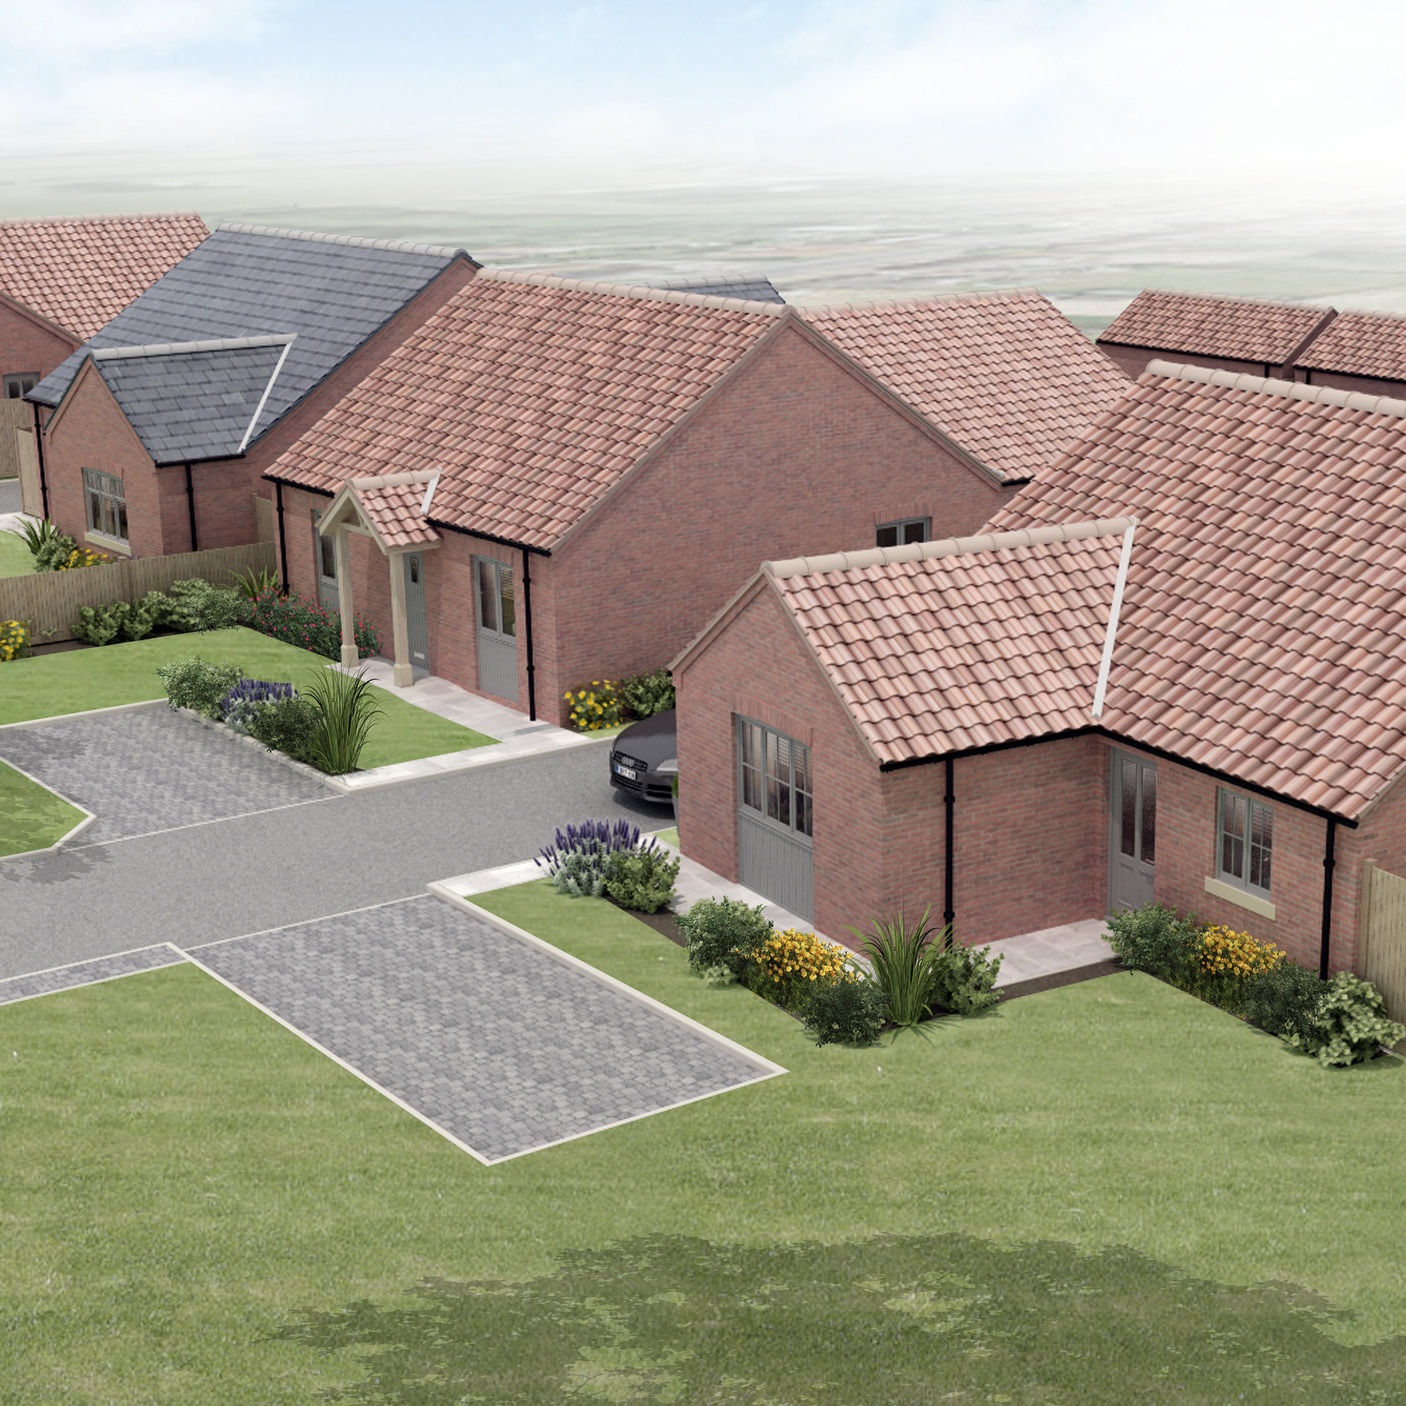 The Finches, Raskelf - A development of 4 charming bungalows in the village of Raskelf.All homes due for completion by early 2020.